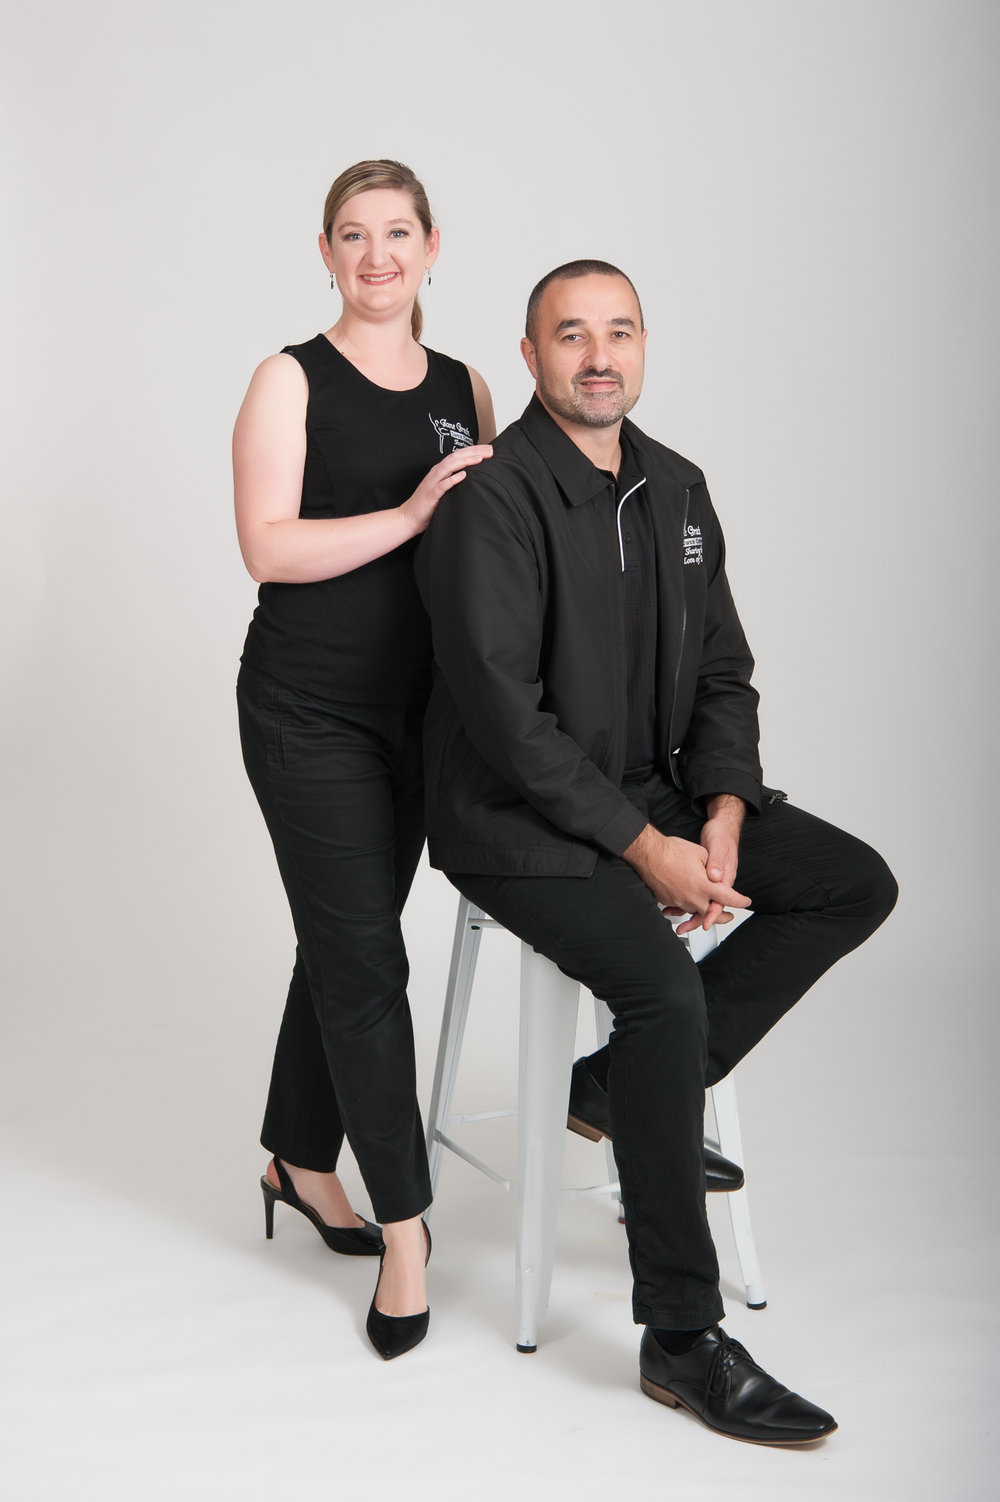 Full length head to toe studio business portrait